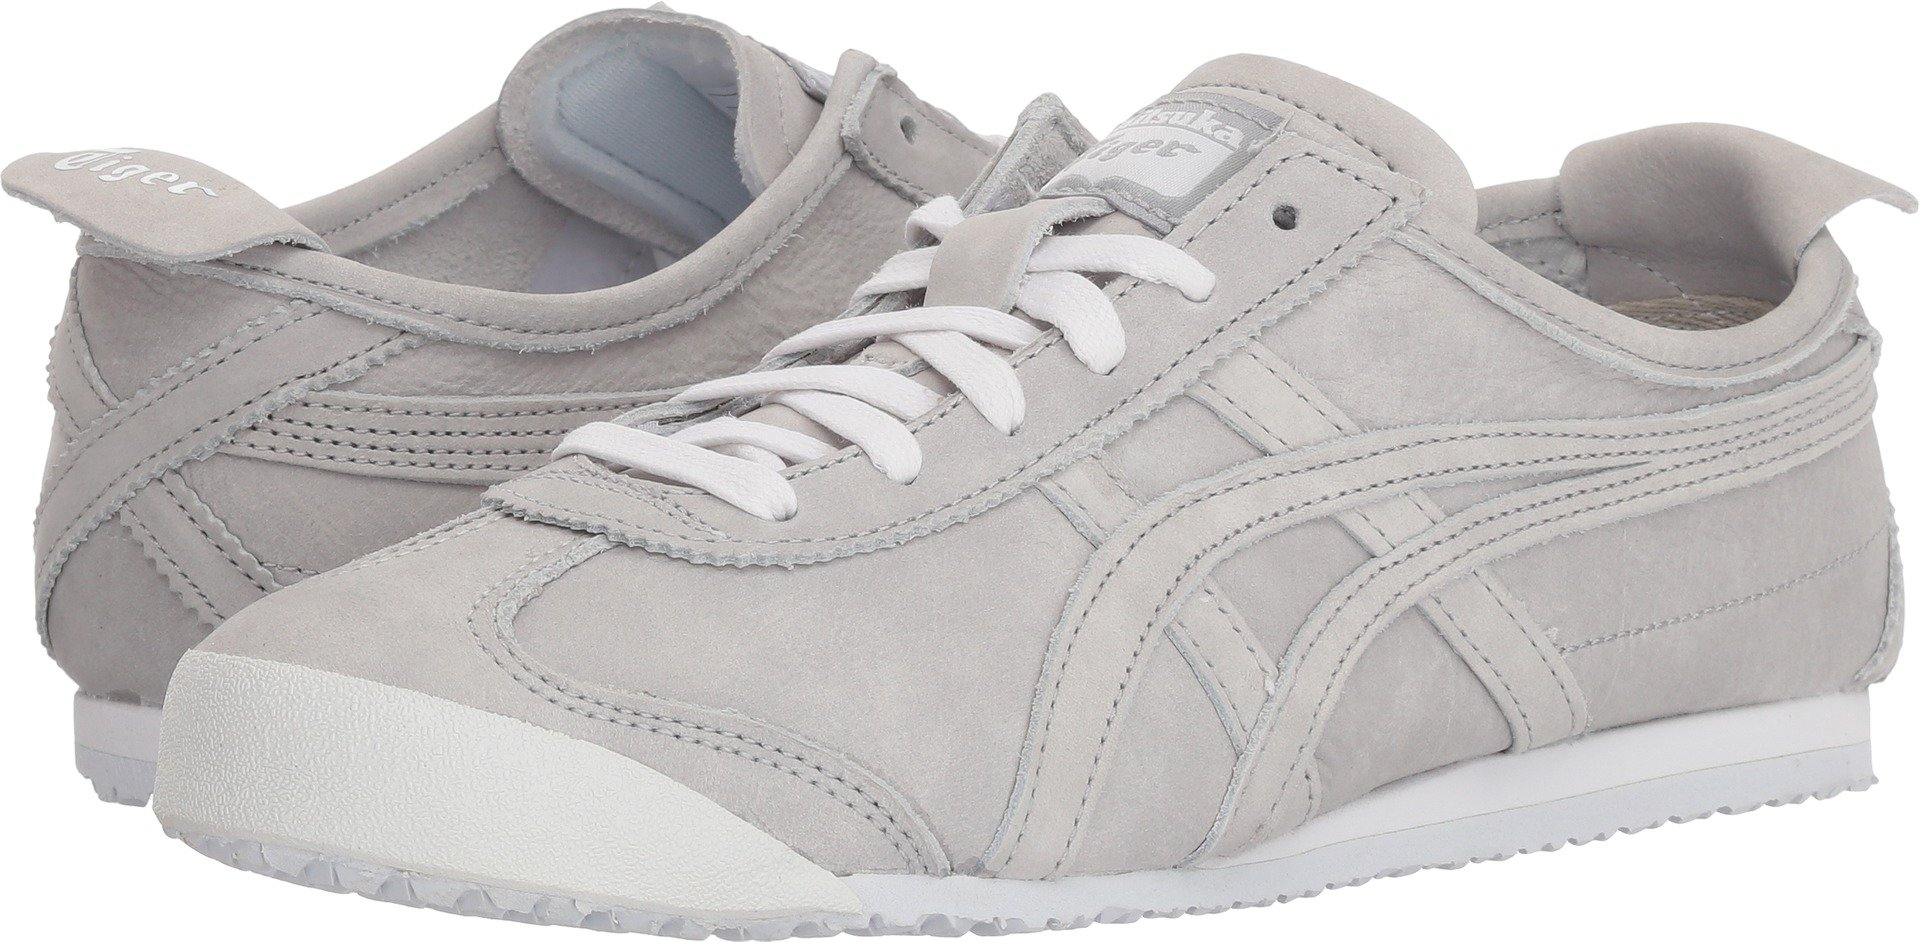 official photos 94cce c5e52 Onitsuka Tiger by Asics Womens Mexico 66 Mid Grey/Mid Grey 10.5 B - Medium